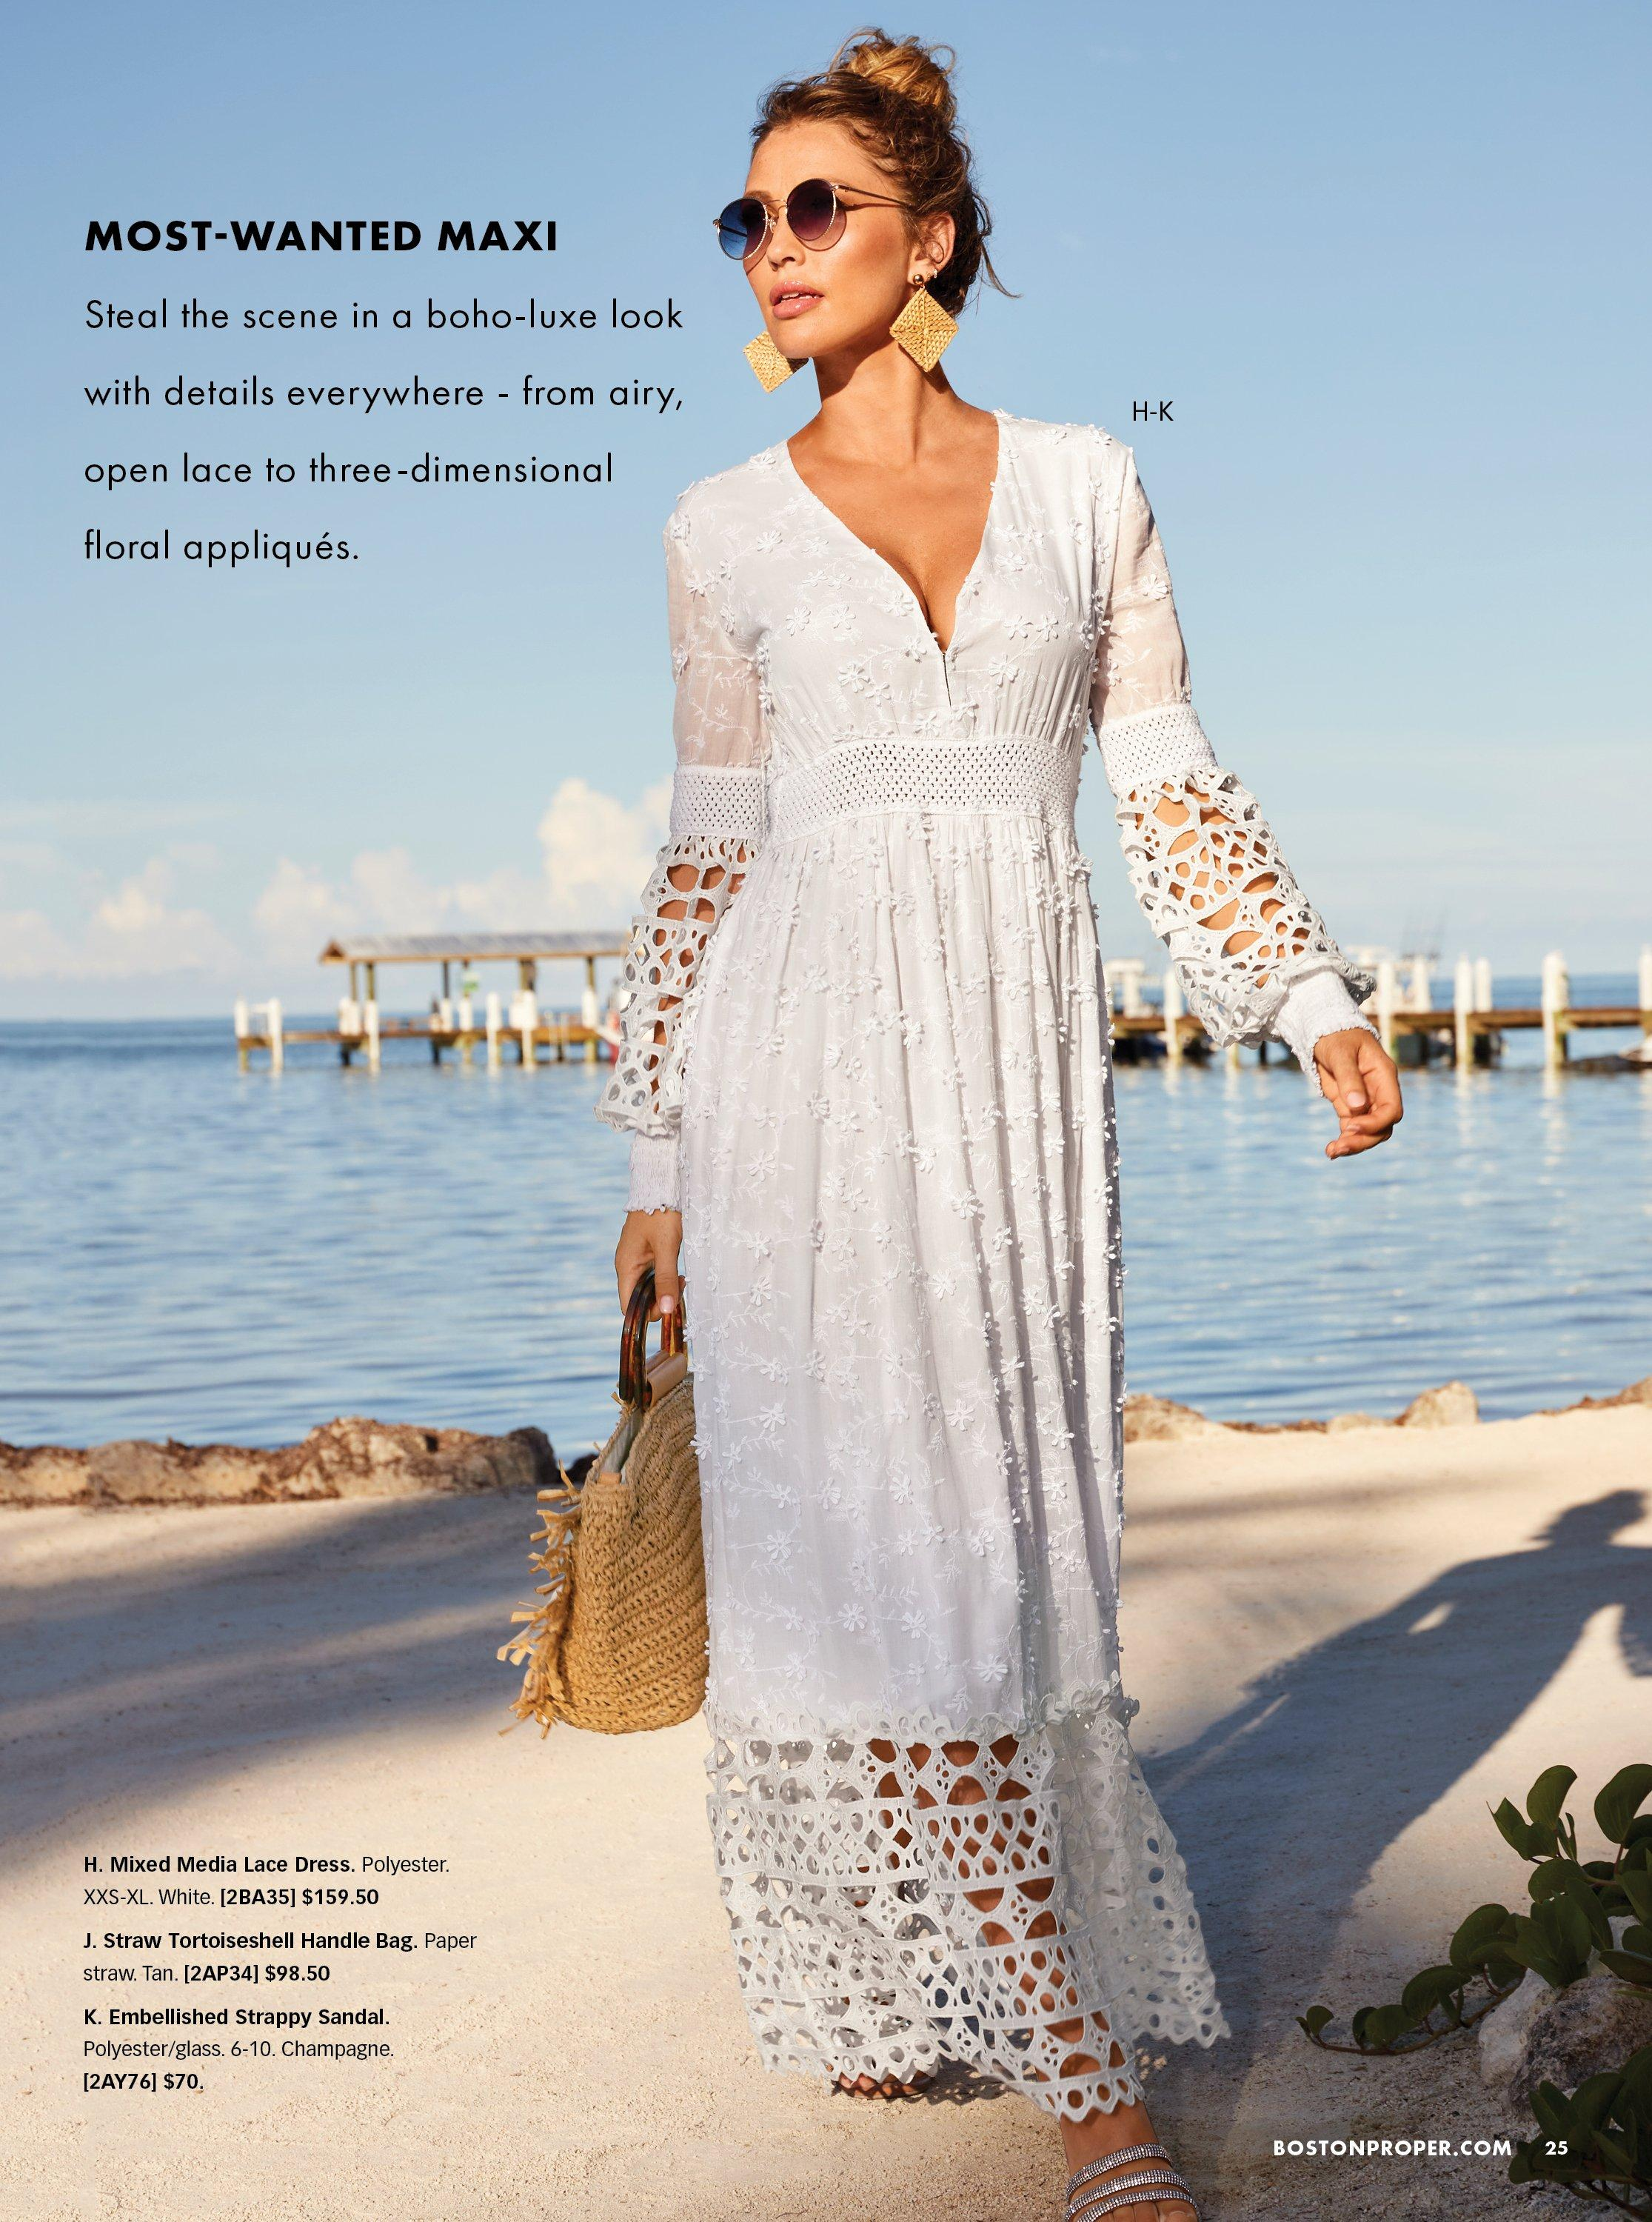 model wearing a lace and crochet white long sleeve maxi dress and holding a straw bag.